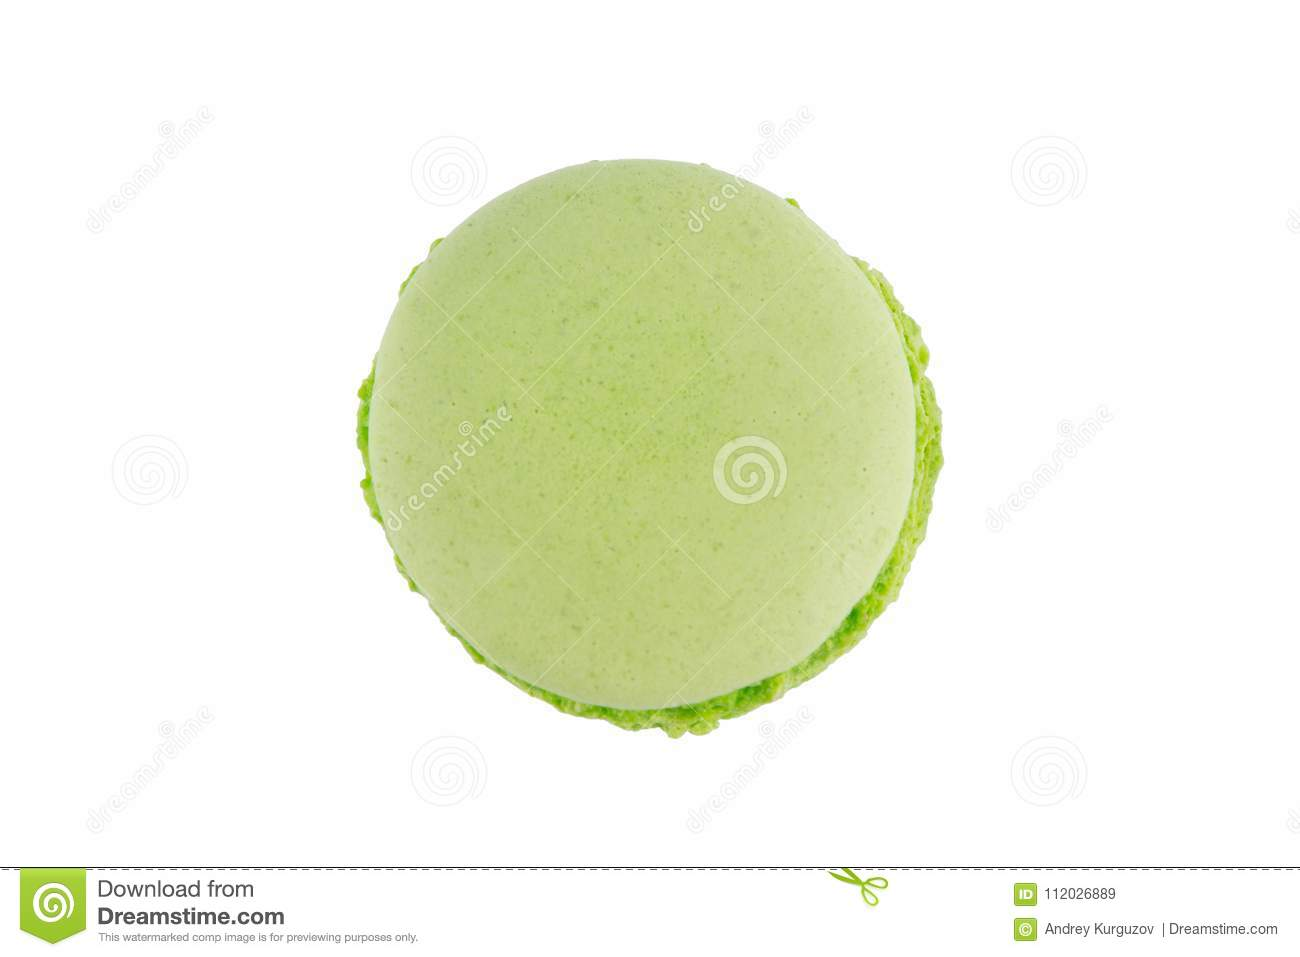 Macaron cookie green apple of color, on white background